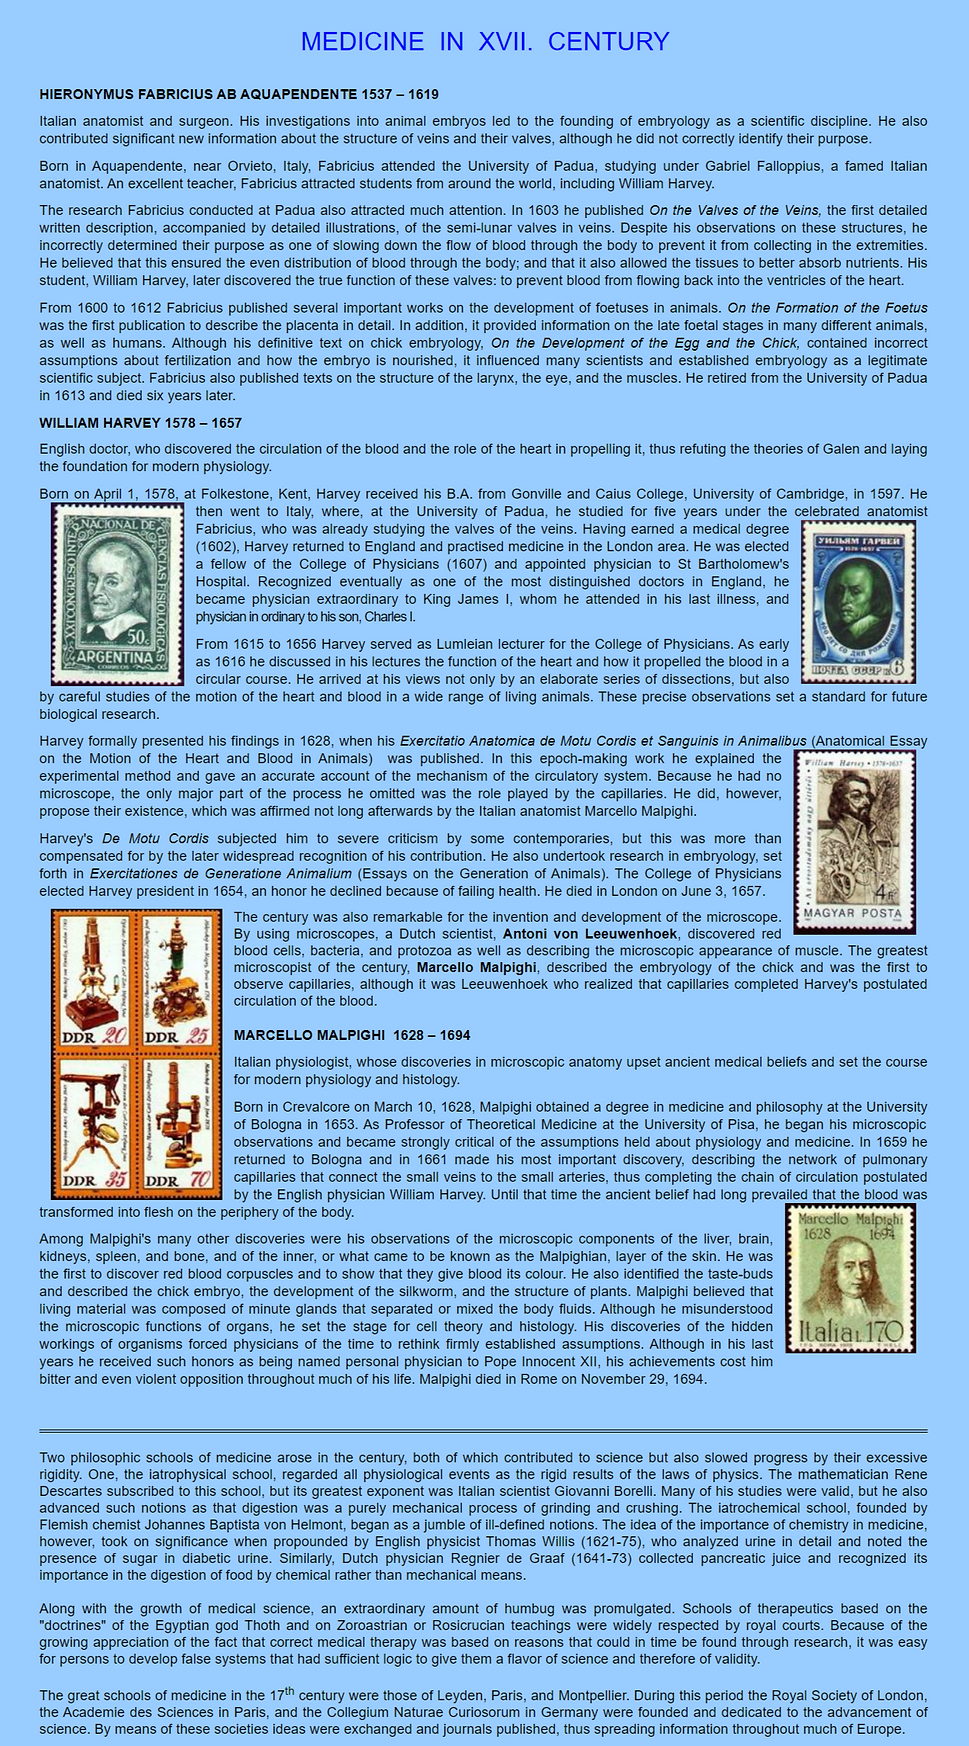 MEDICINE  IN  XVII.  CENTURY.png, Medicine-on-stamps, medicine, postage, postal, collecting, art, history, Medical Philately, Filatelia Médica, Filateli medis, Медицинская Филателия, Filatelia medica, 医療切手, 集邮医学, 의학적으로, Medisch filatelie, medizinische Philatelie, Dr Amir Monir ,Philatélie médicale, Orvosi Filatélia, 集郵醫學, Tıbbi Filateli, #filatelia ,#philately ,#stamp #stampcollection, #medicalphilately ,#medicine_on_stamps ,#art ,#thematics ,#philatelic #timbre, #philatélie ,#HistoryOfMedicine, #medicine #History, #postalstamps ,#artsinhealth ,Medikal na Philately, Falsafah Perubatan, Ιατρική Φιλοτελία, پزشکی فیلاته, طوابع طبية